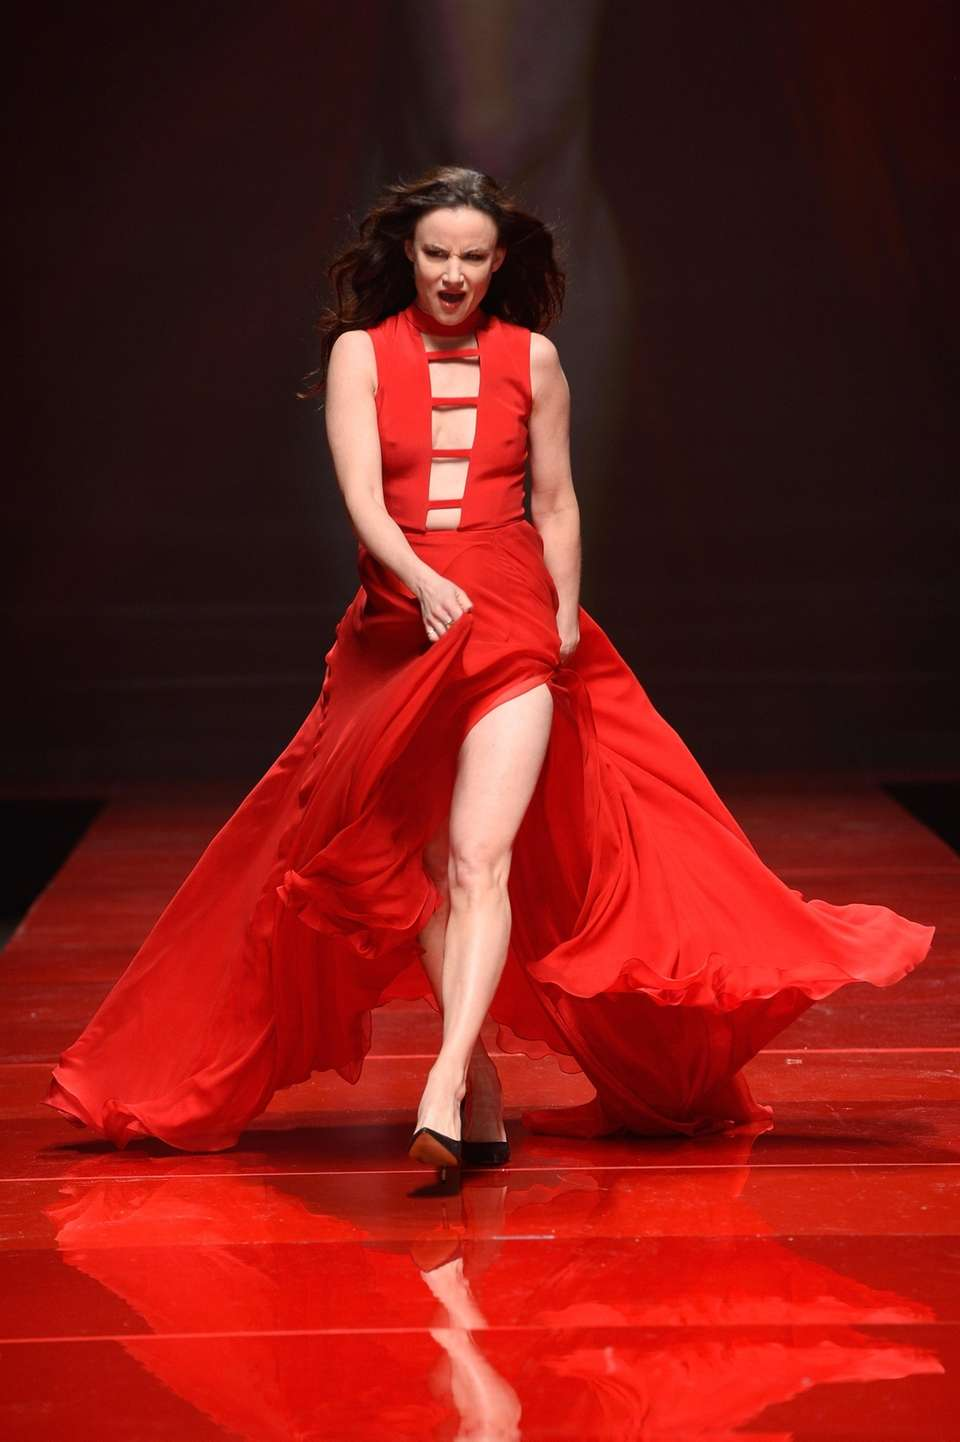 Actress Juliette Lewis struts down the runway wearing